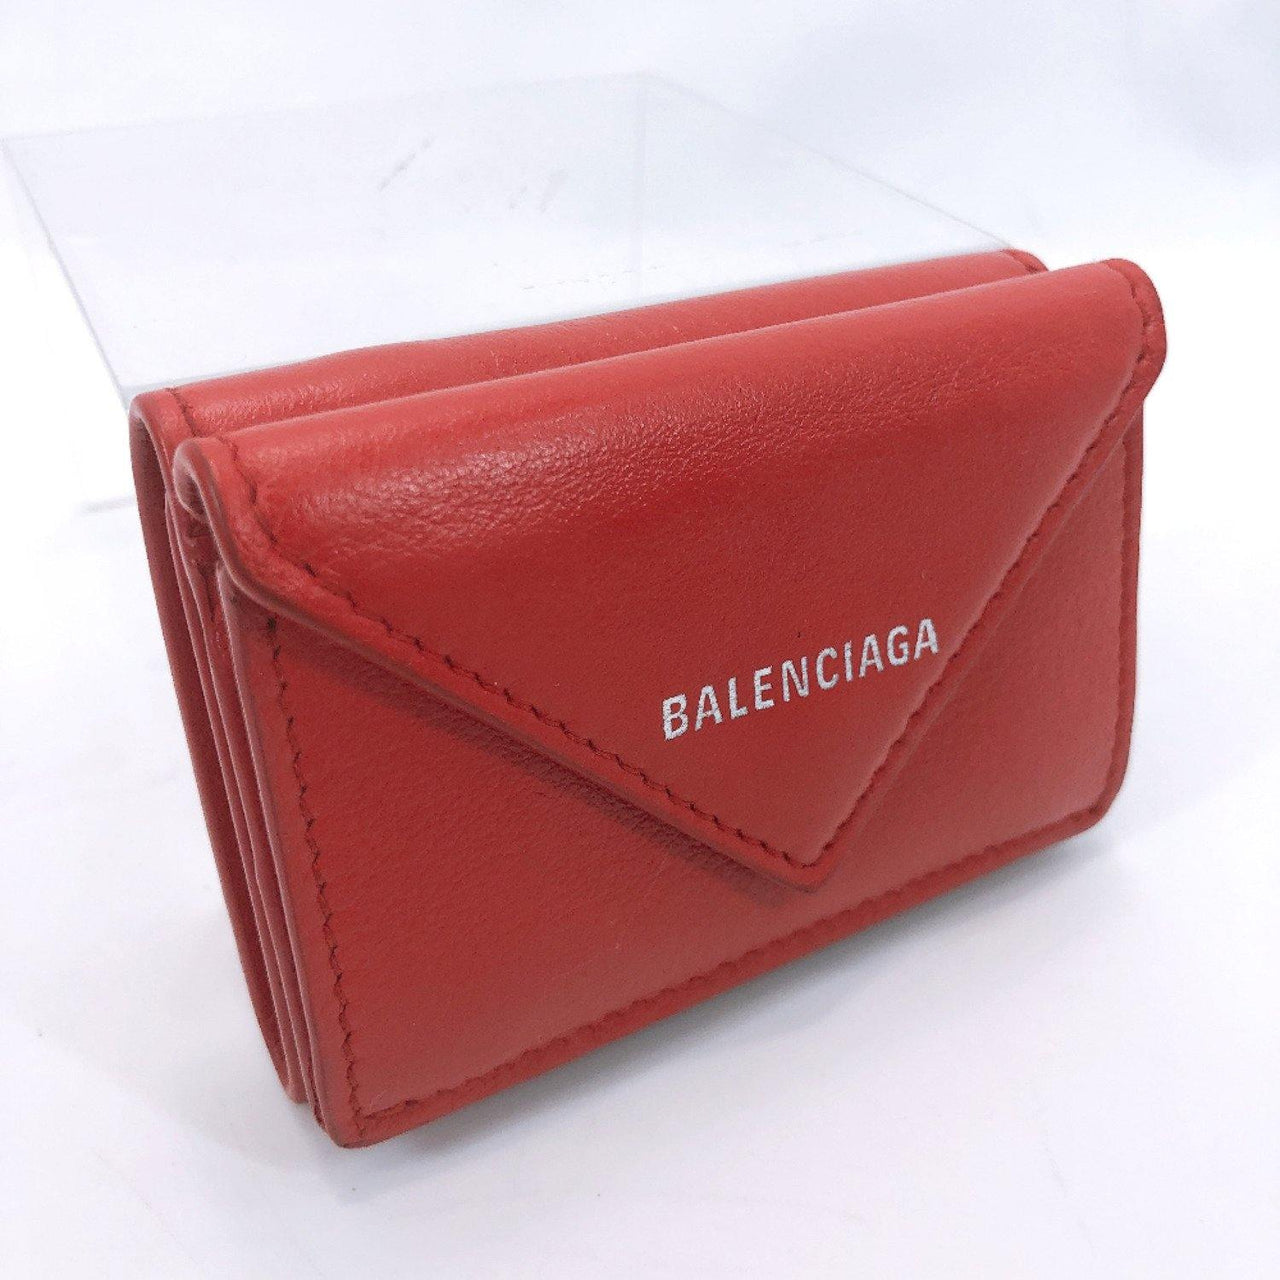 BALENCIAGA Tri-fold wallet 391446 Paper mini wallet leather Red Women Used - JP-BRANDS.com